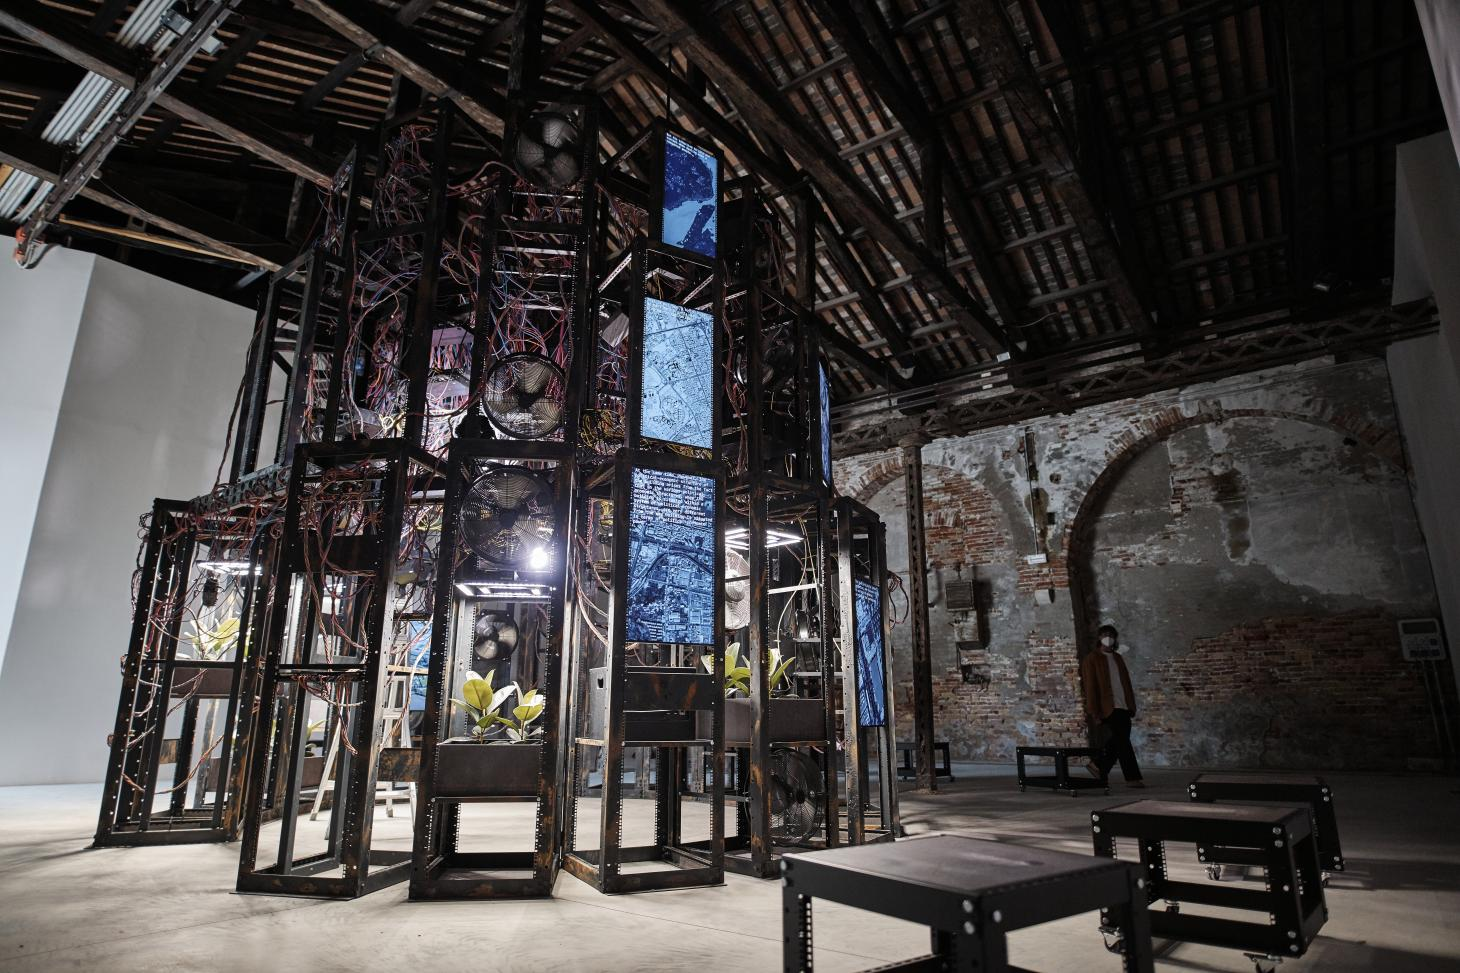 The Irish Pavilion's installation at the 2021 Venice architecture biennale is made of a massive wooden structure crammed with video screens